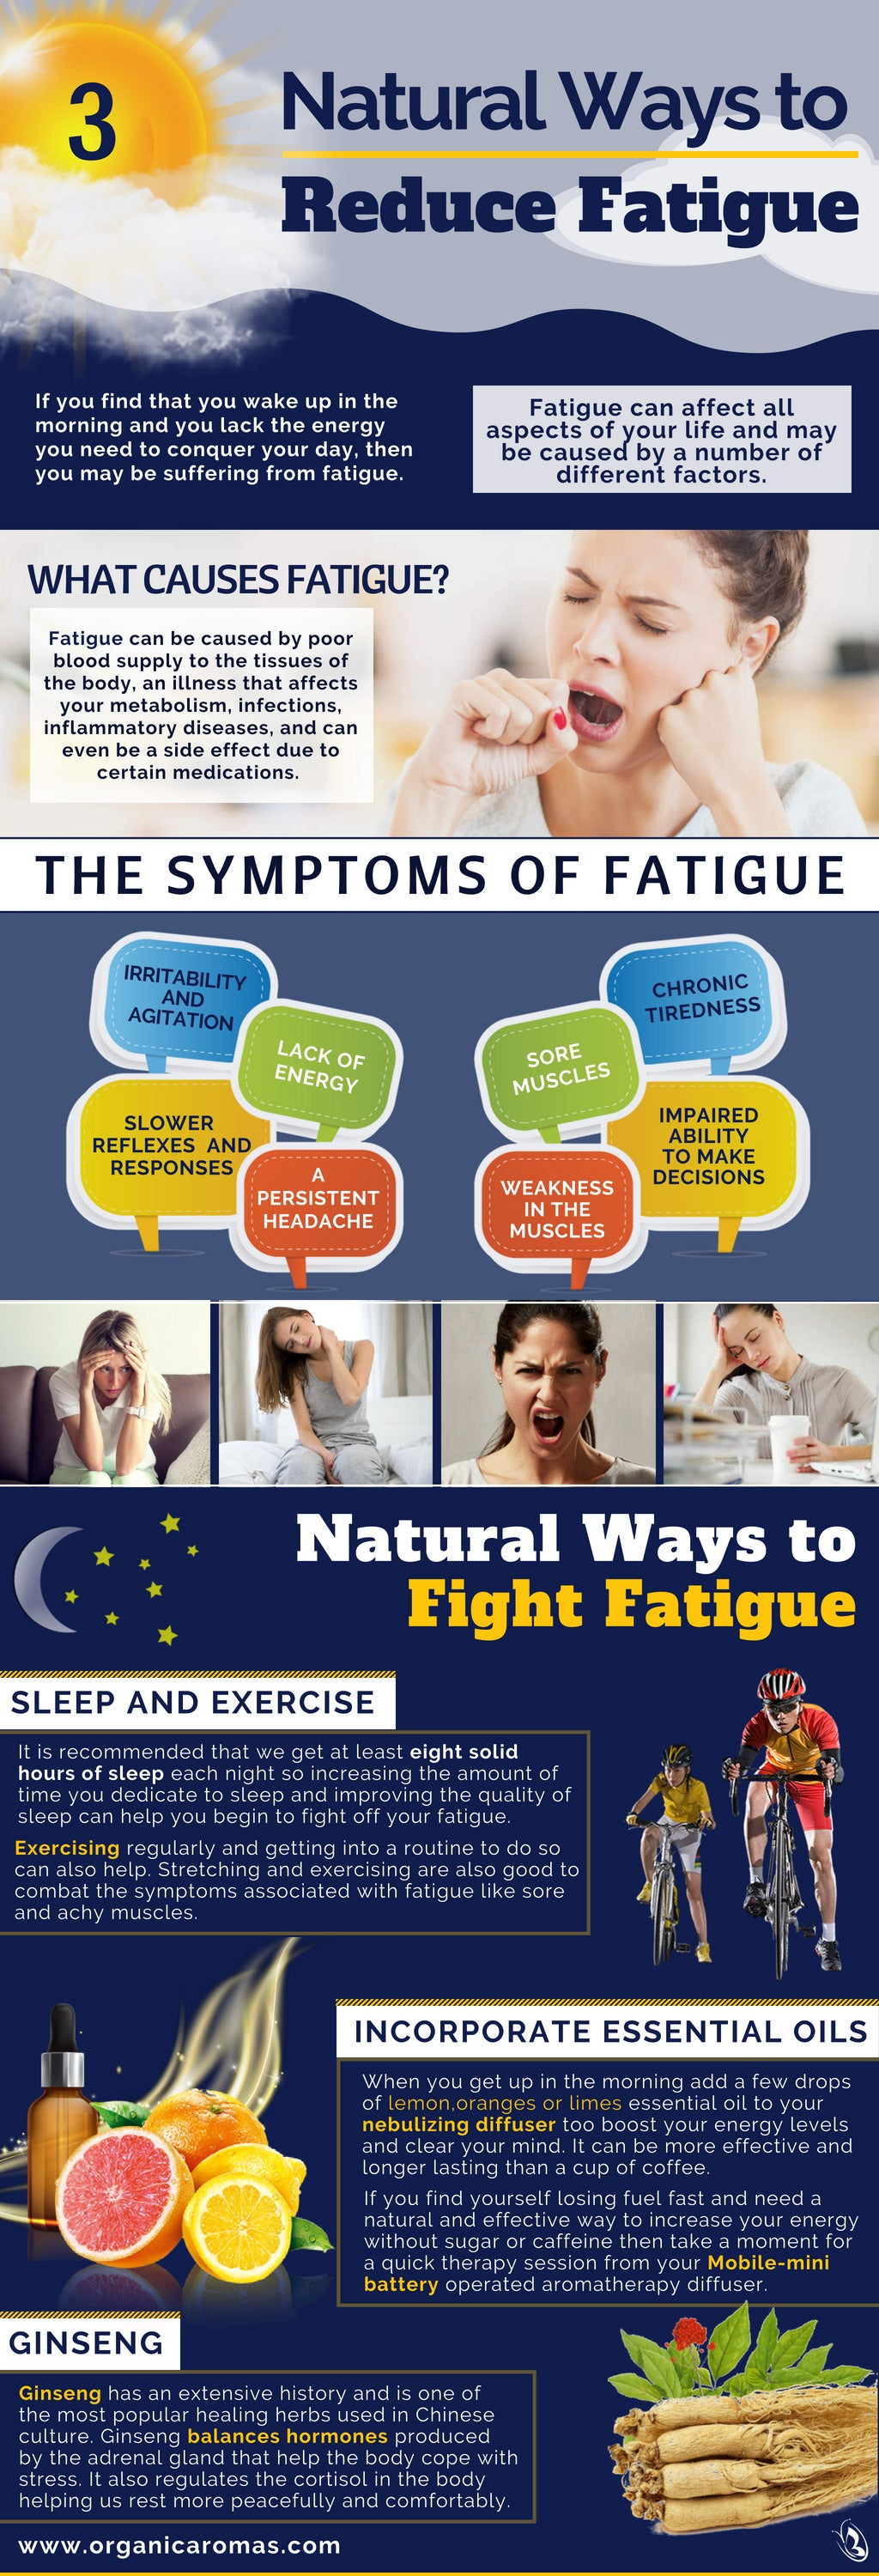 3 Natural Ways to Reduce Fatigue